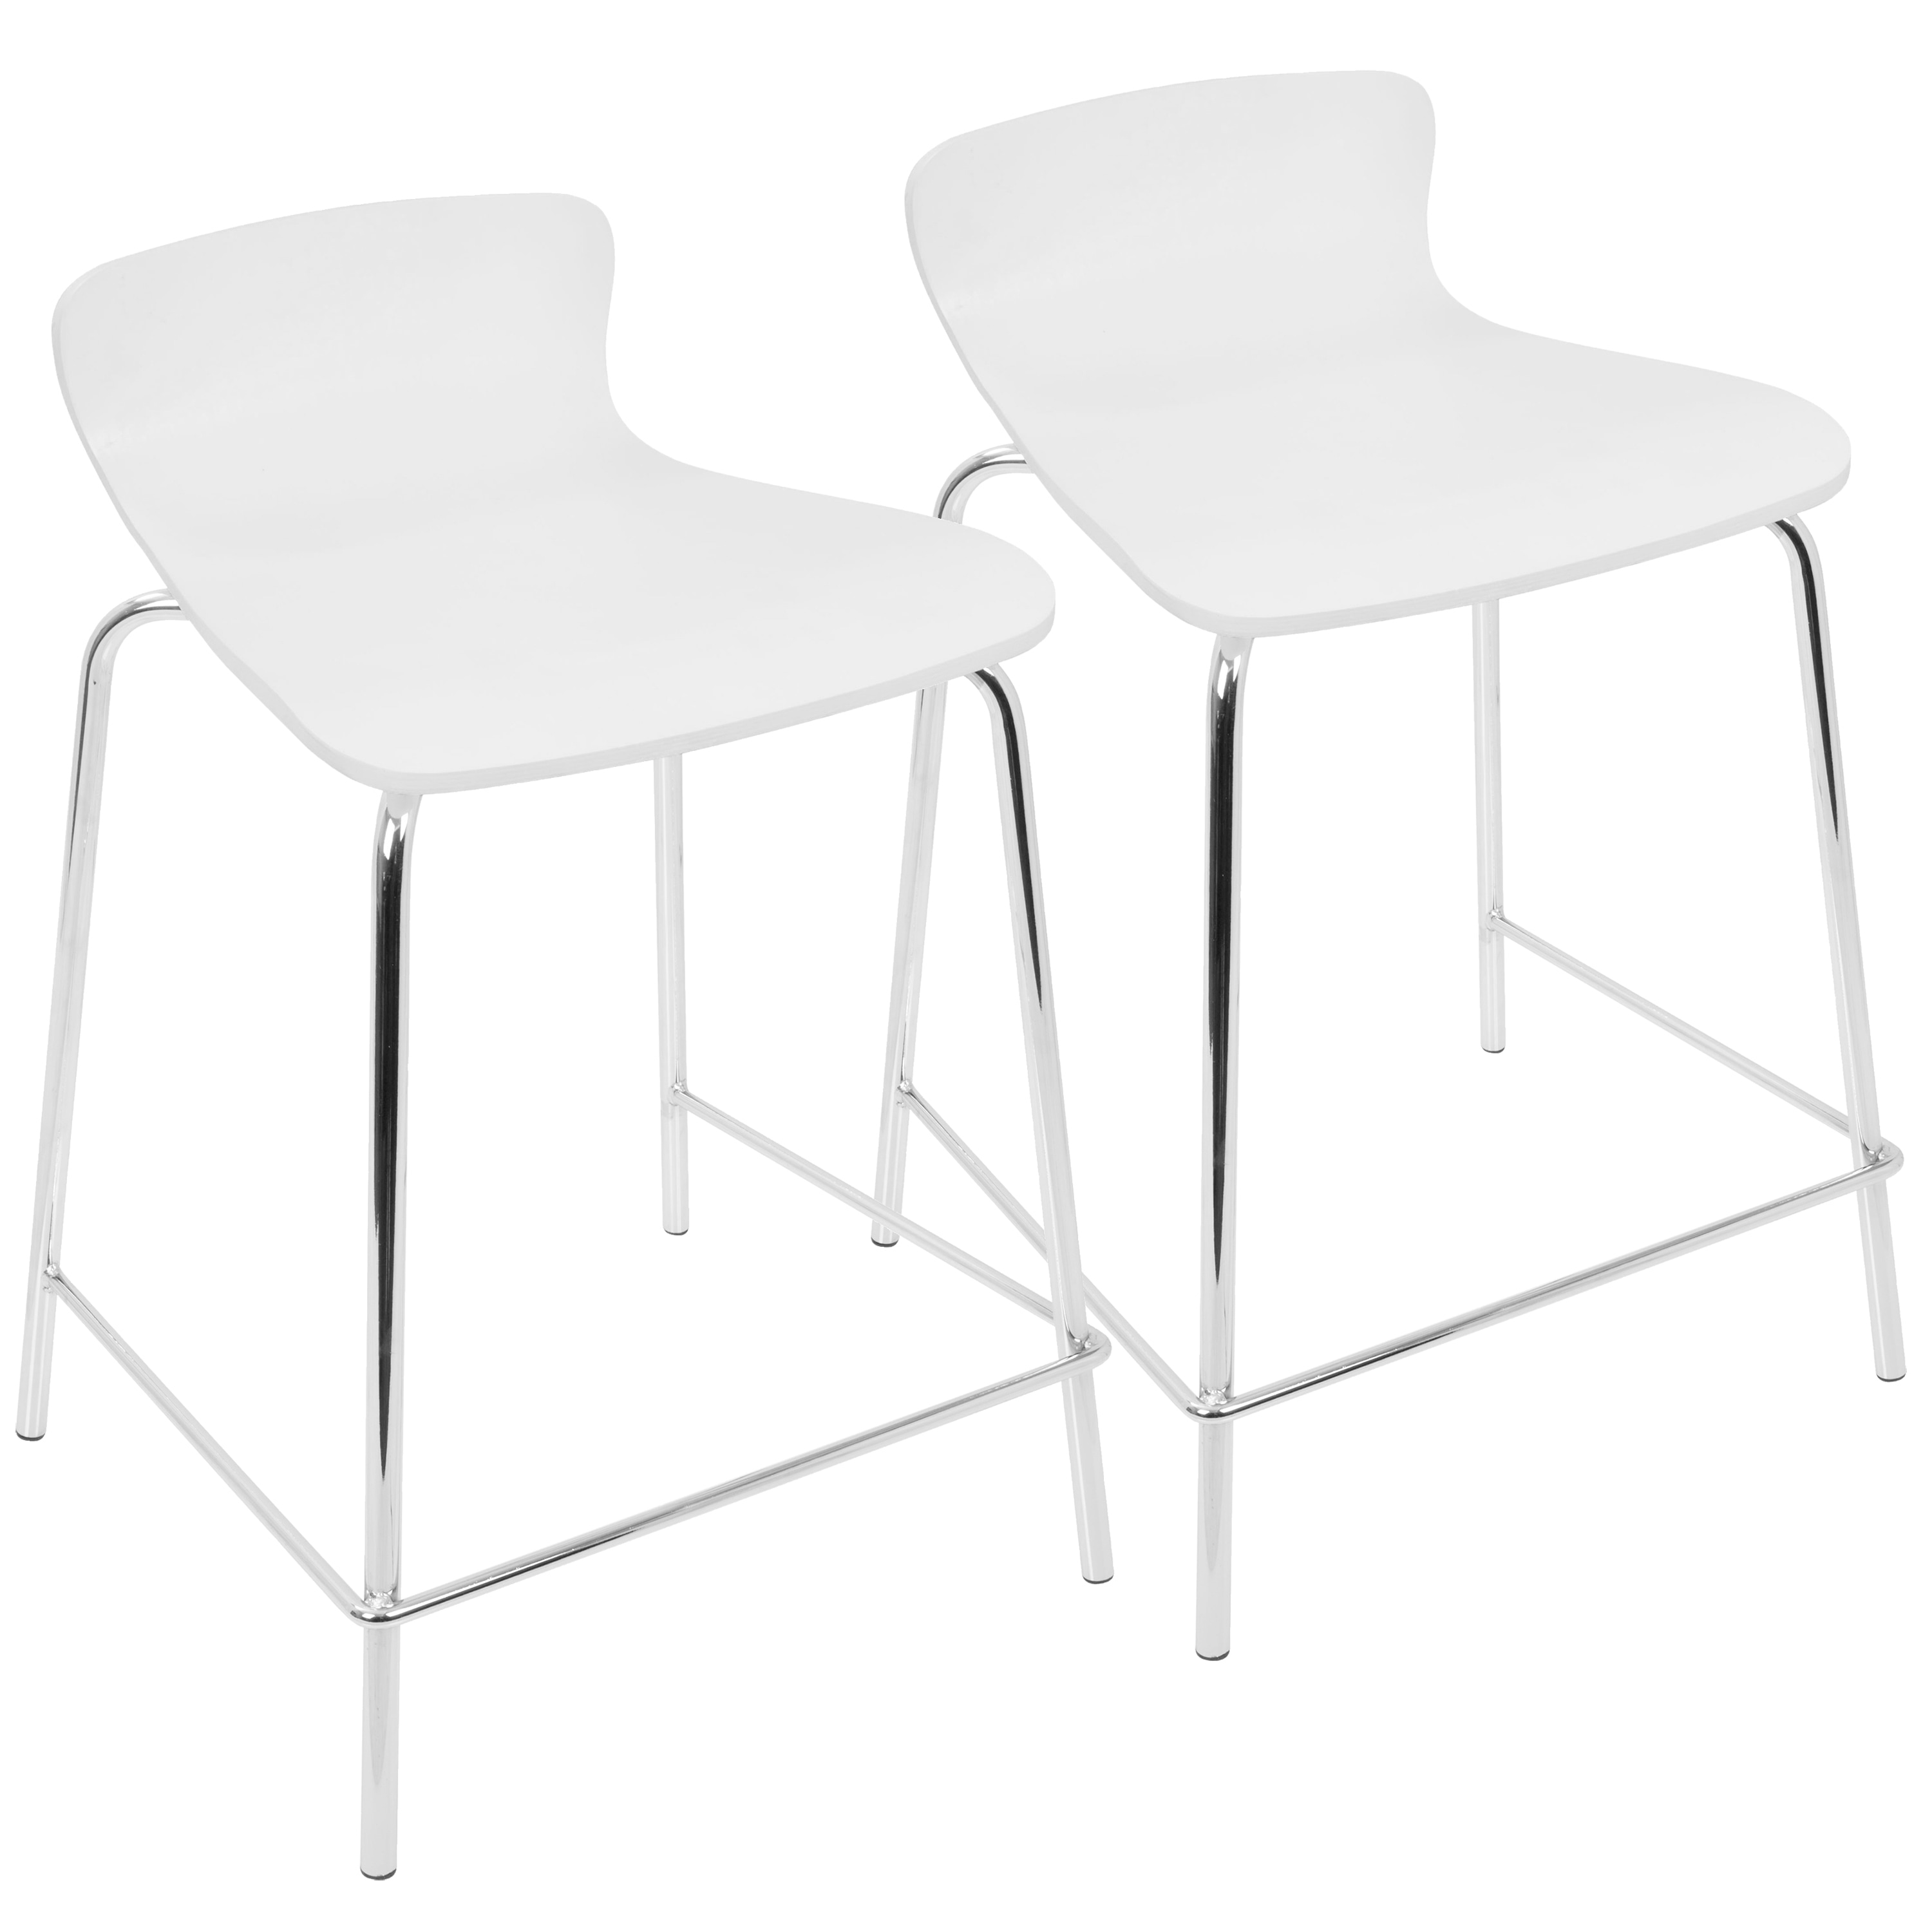 LumiSource Bentwood Stackable Contemporary Counterstools .  sc 1 st  Nextag & Bentwood stacking stools | Compare Prices at Nextag islam-shia.org